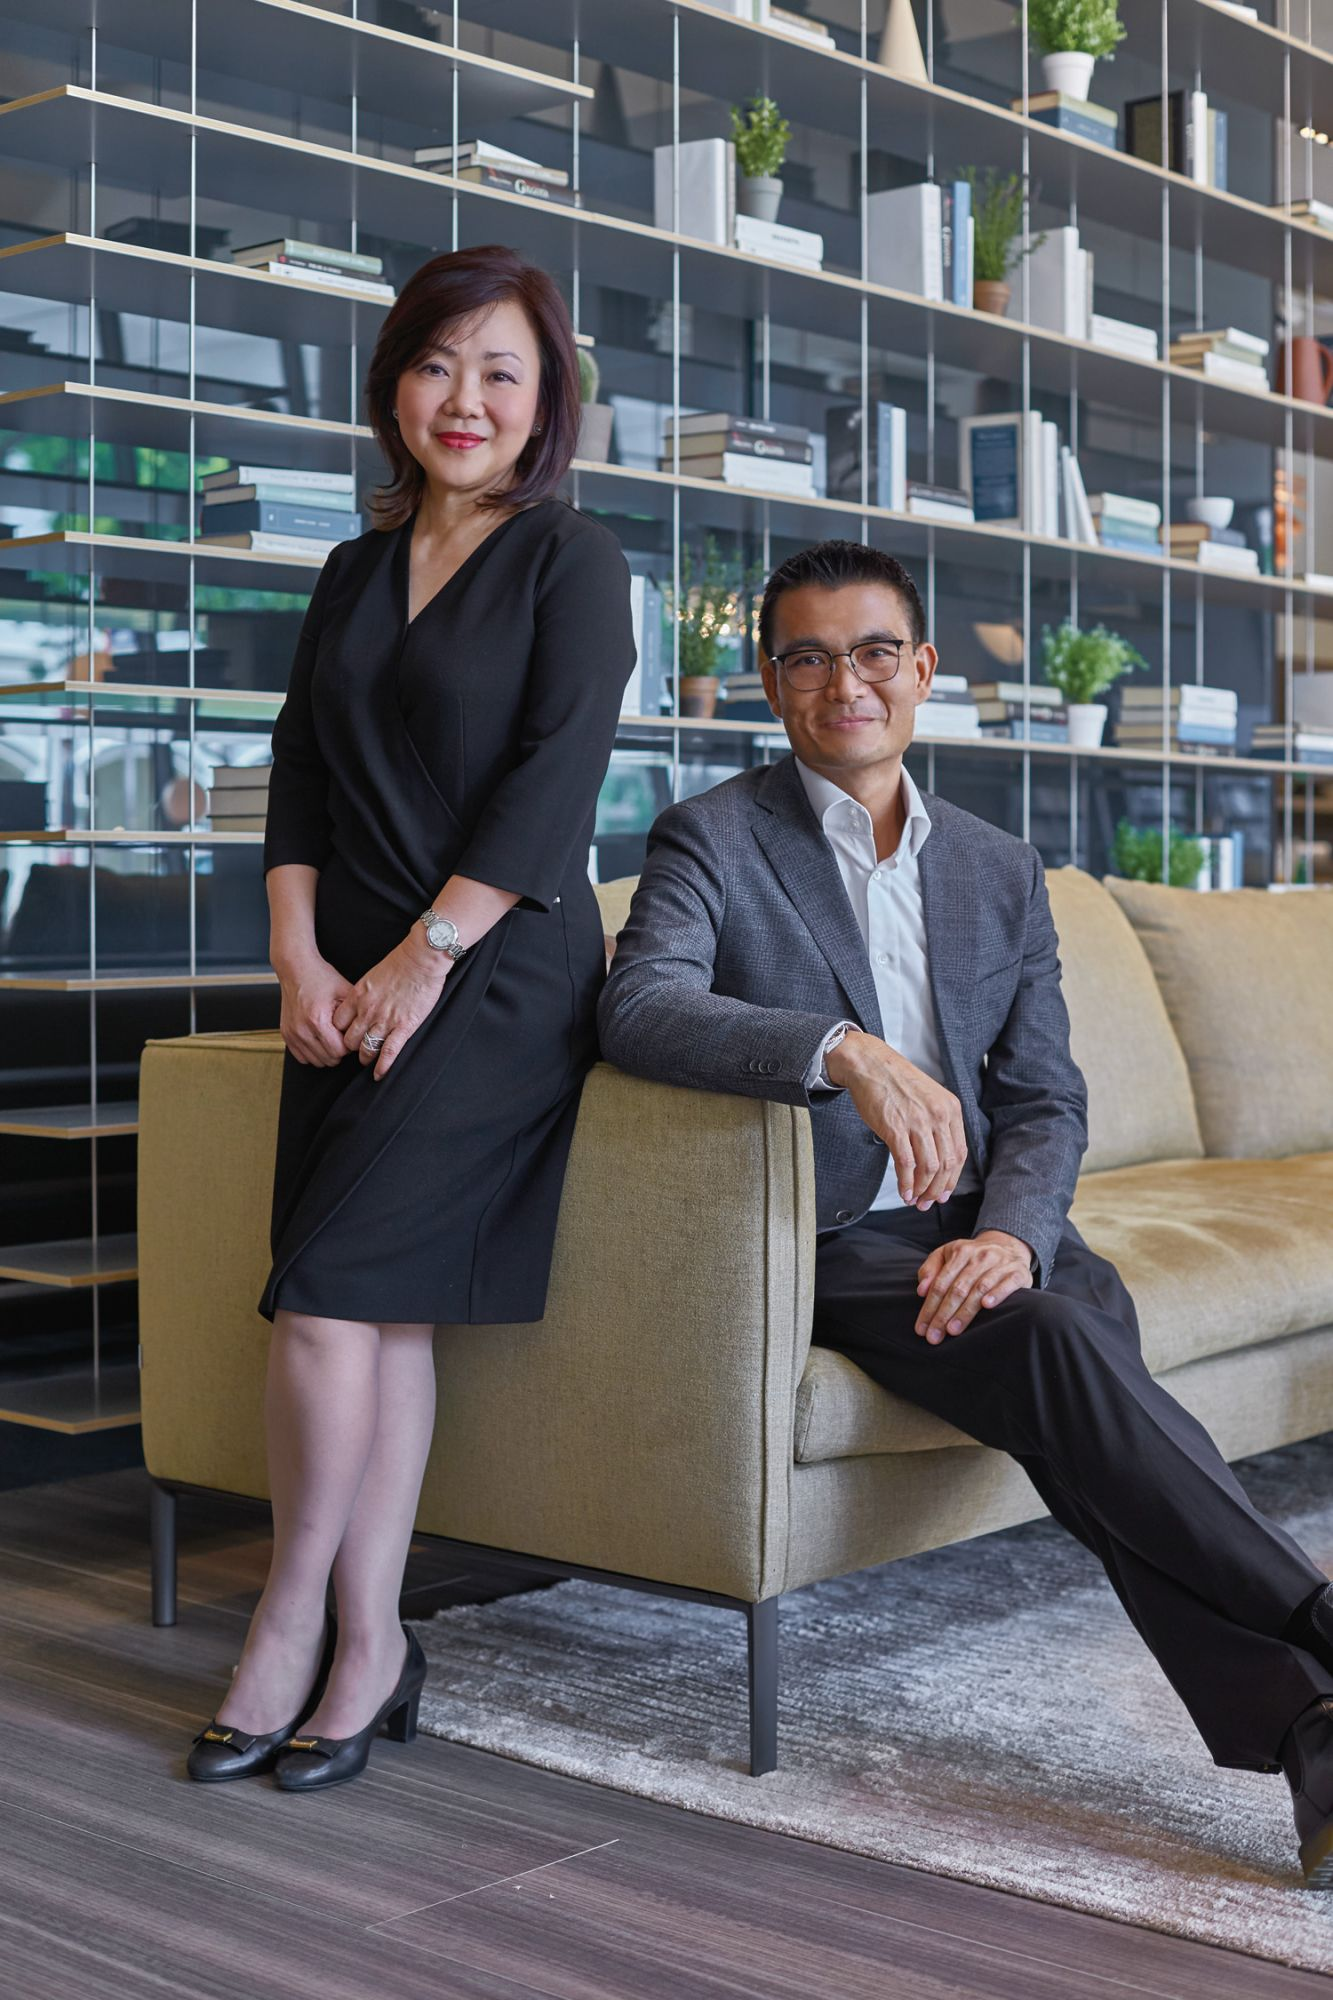 General manager Ann Lee with Calvin Ngo, vice-president of P5